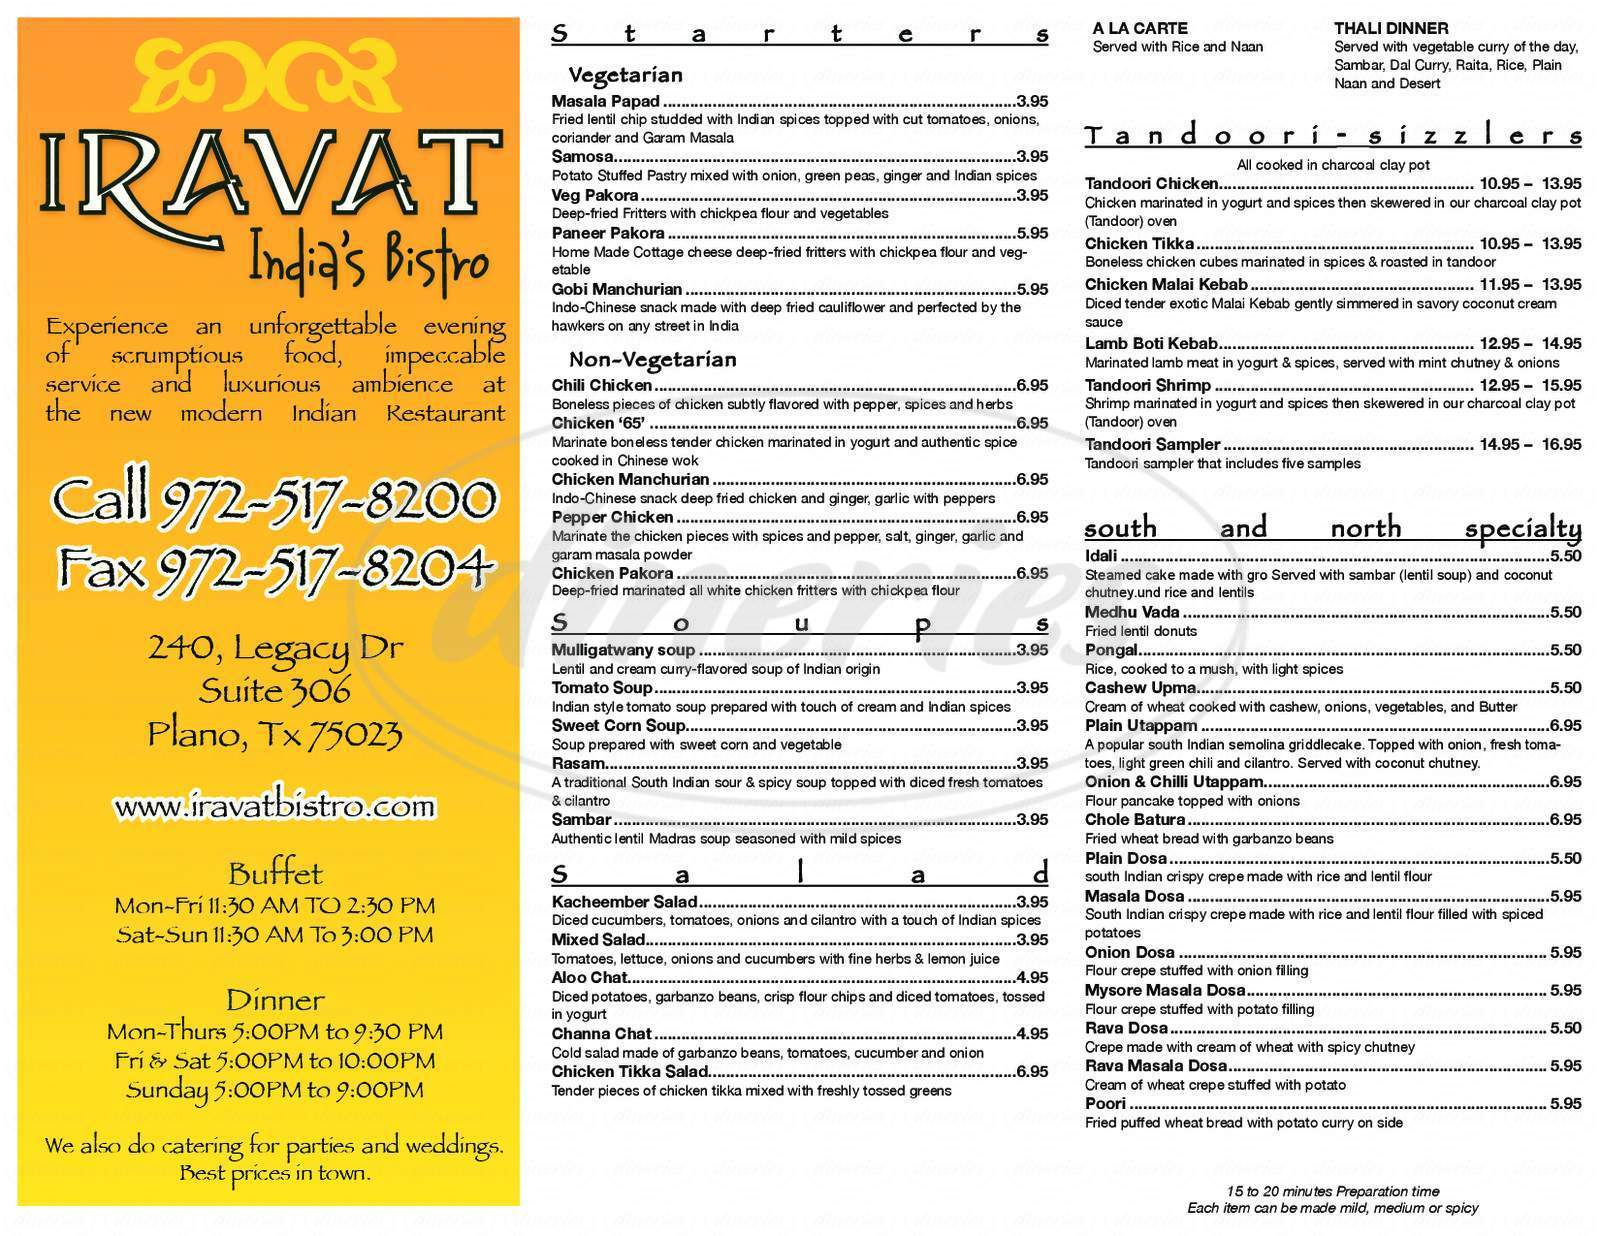 menu for Iravat India's Bistro